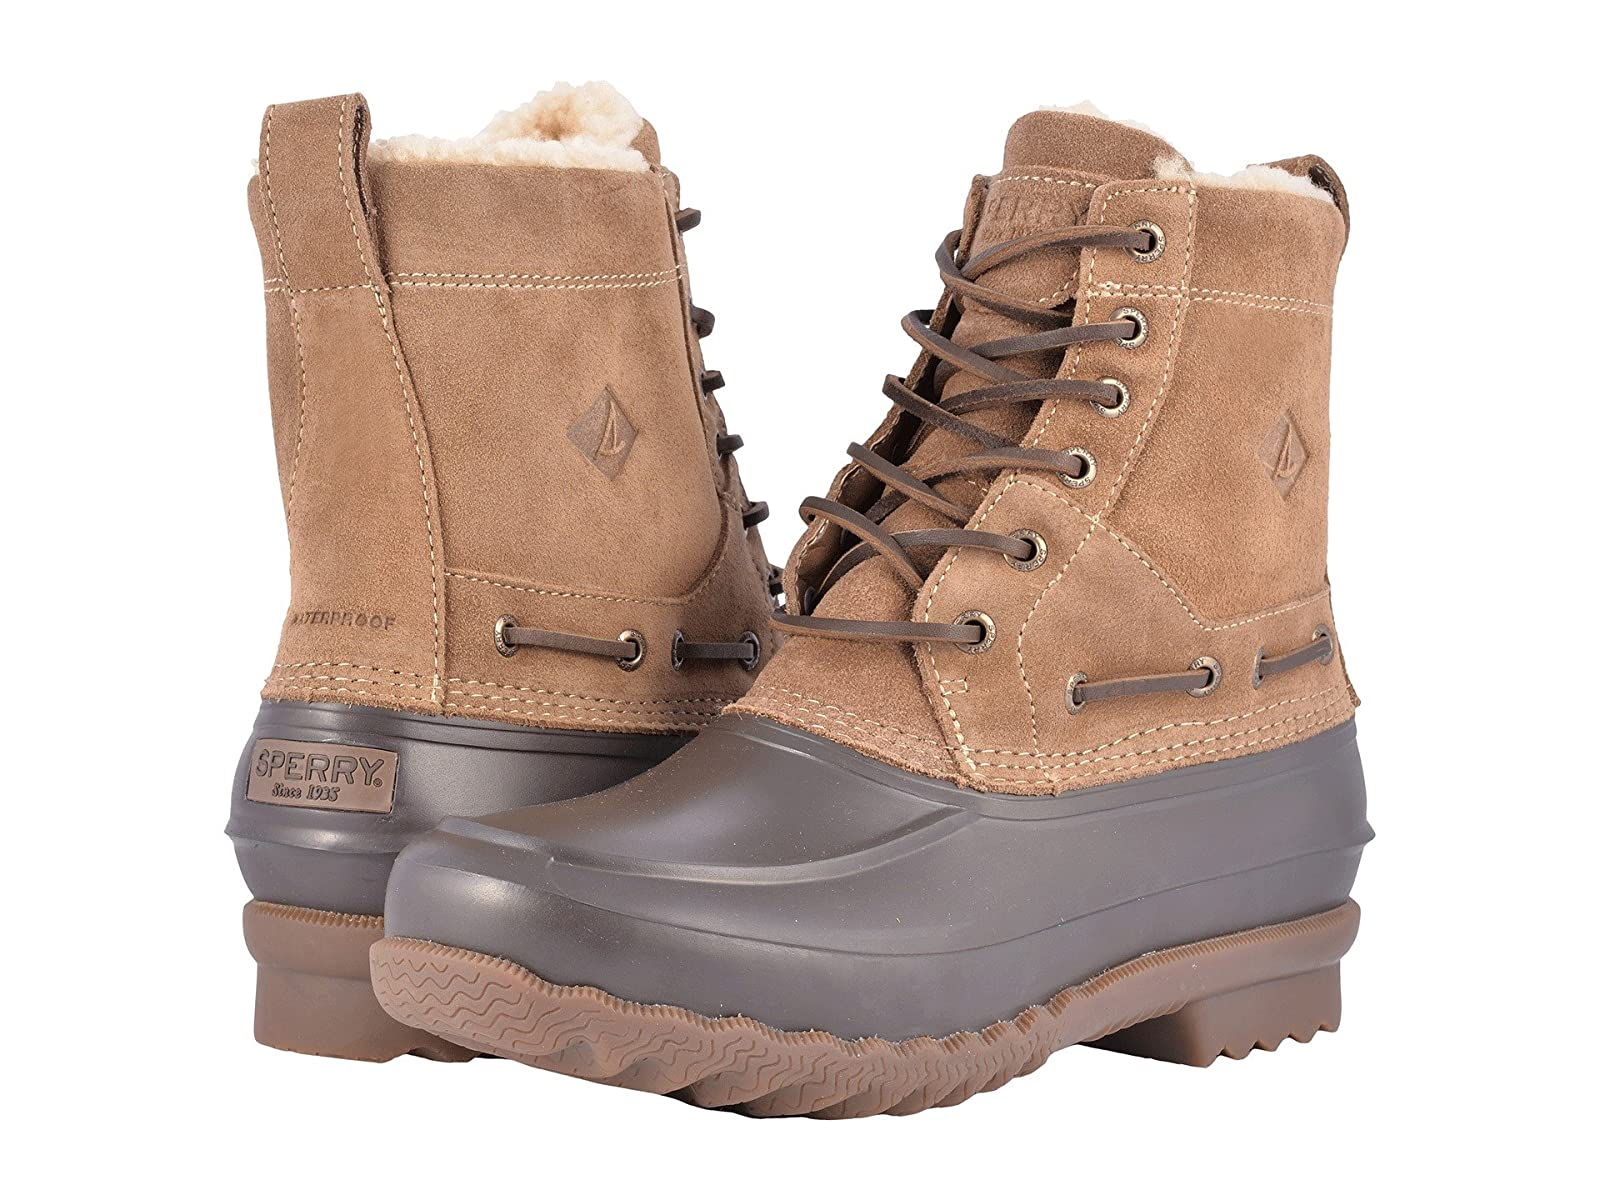 Sperry Decoy Boot Shearling WaterproofCheap and distinctive eye-catching shoes